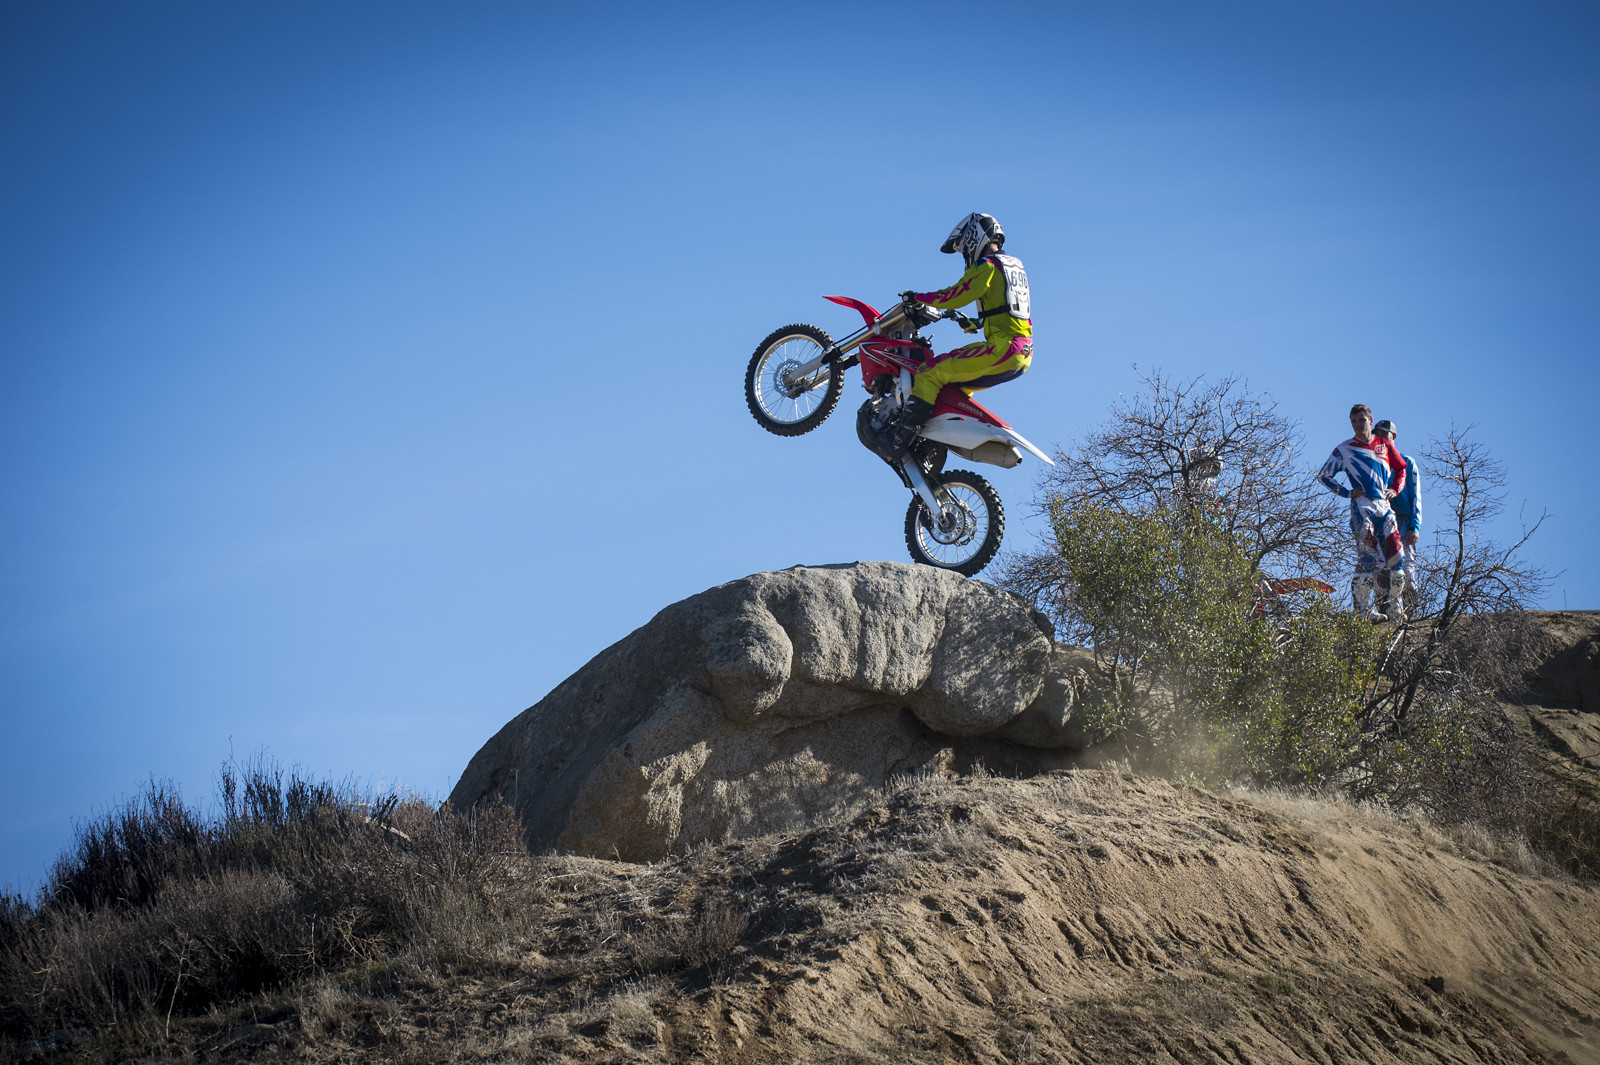 Noah Kepple - Ian Collins - Mountain Biking Pictures - Vital MTB